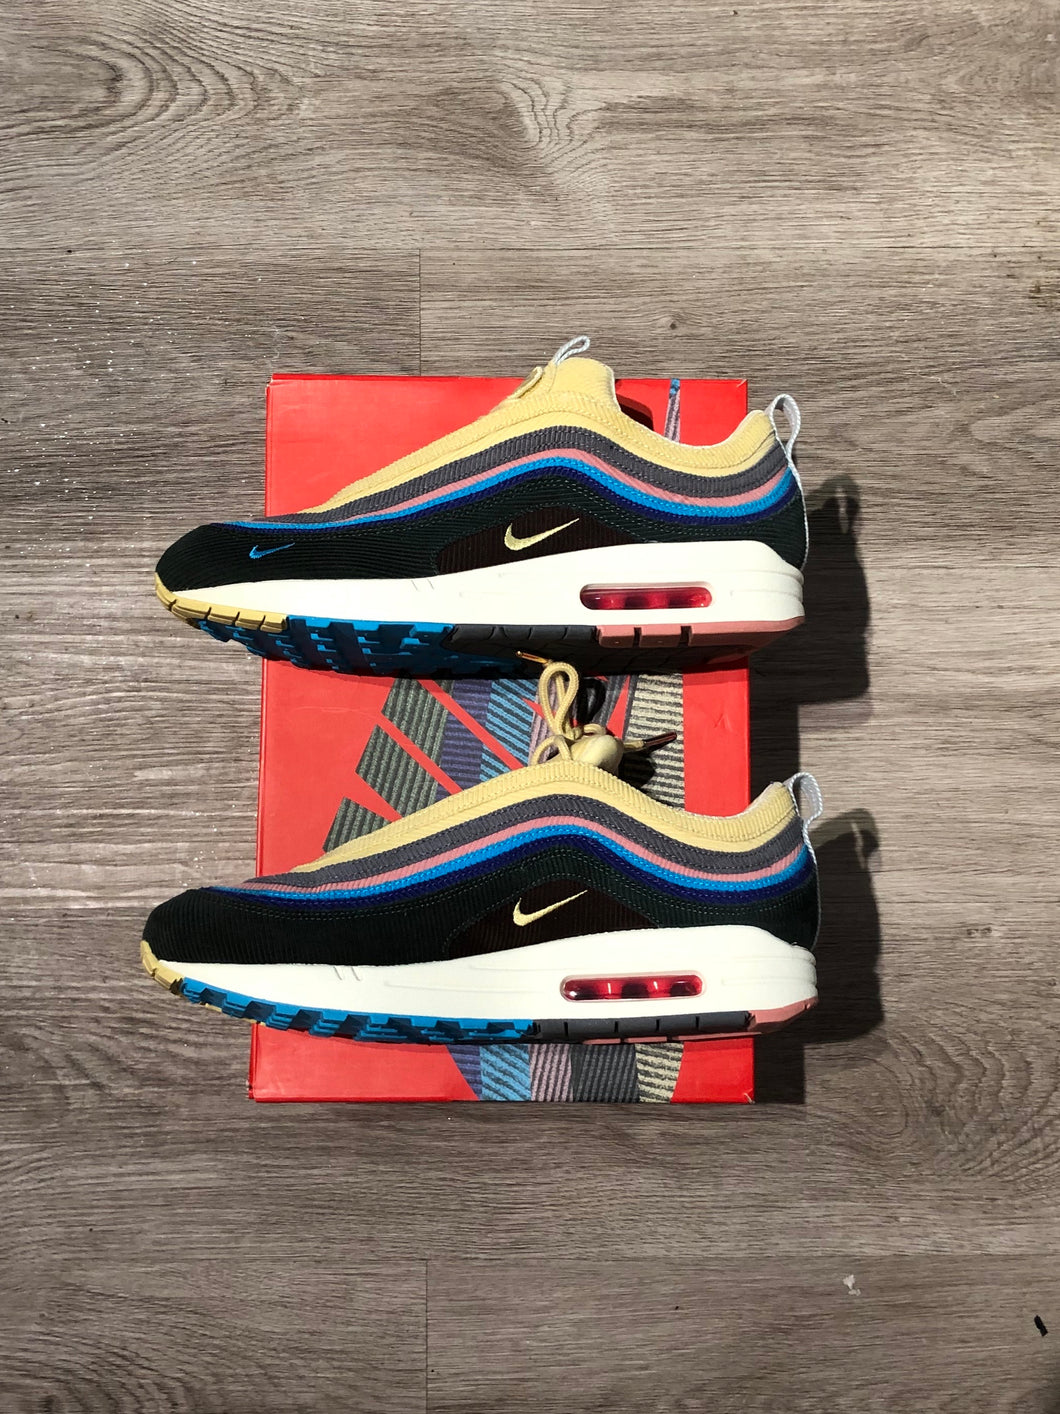 Nike x Sean Wotherspoon Air Max 1/97